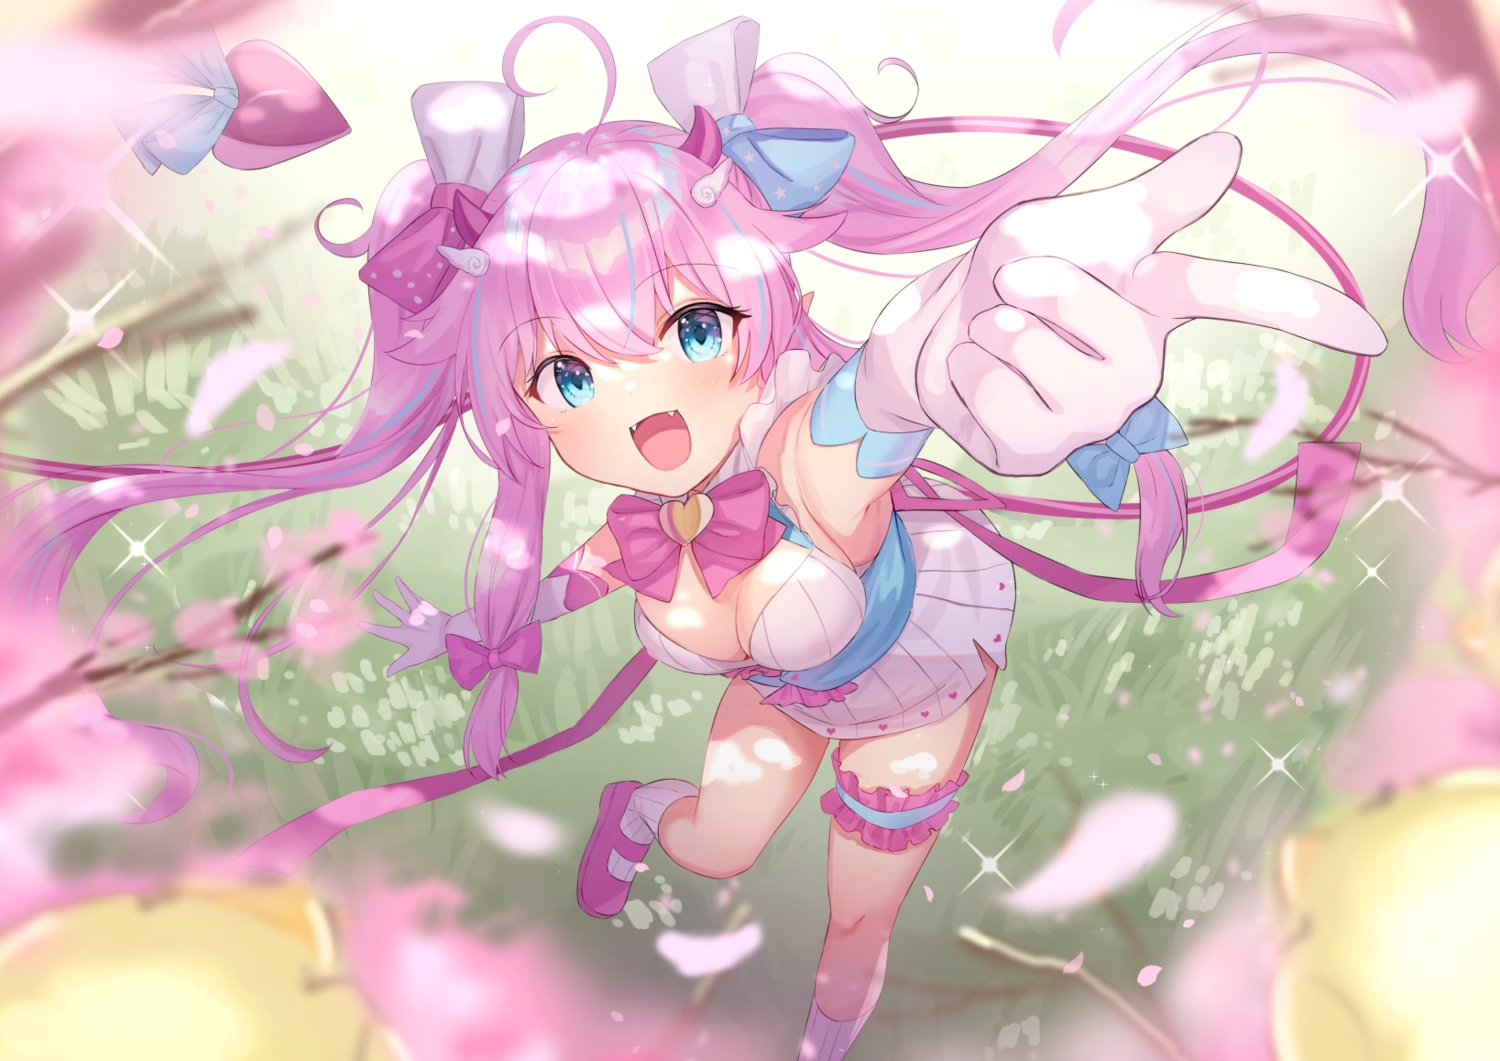 aqua_eyes bow breasts cherry_blossoms cleavage dress elbow_gloves fang flowers gloves long_hair pointed_ears purple_hair ribbons socks tagme_(character) tsukiman twintails